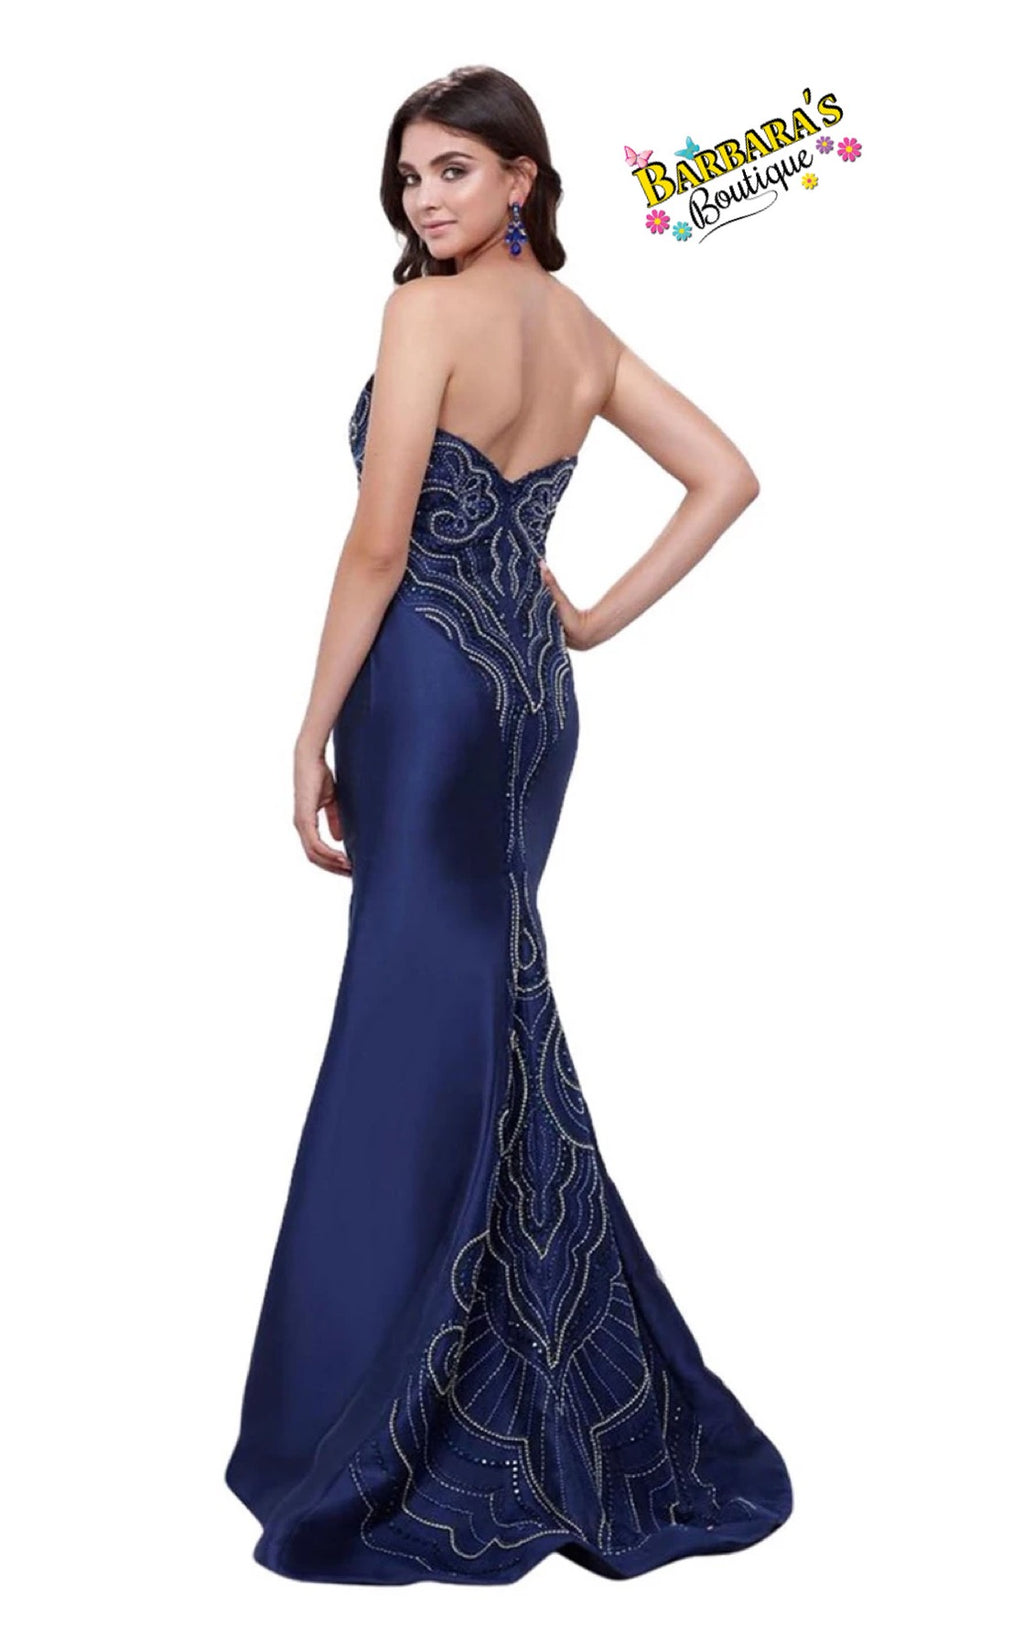 Strapless Navy Mermaid Dress Jewel Accents With Train